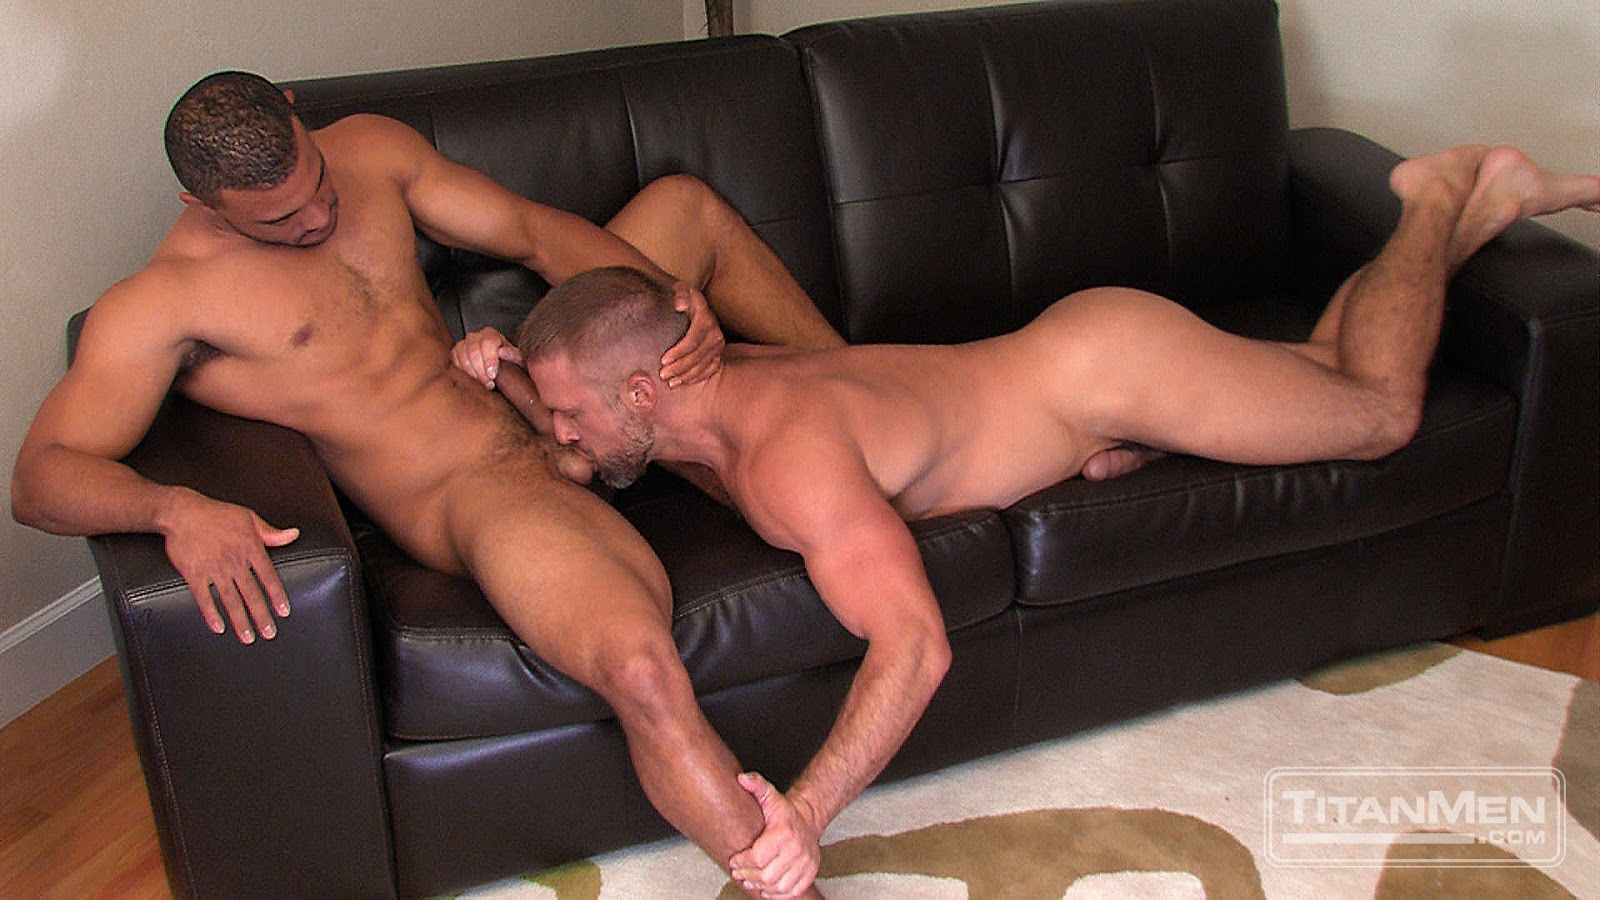 Dirk caber jay bentley